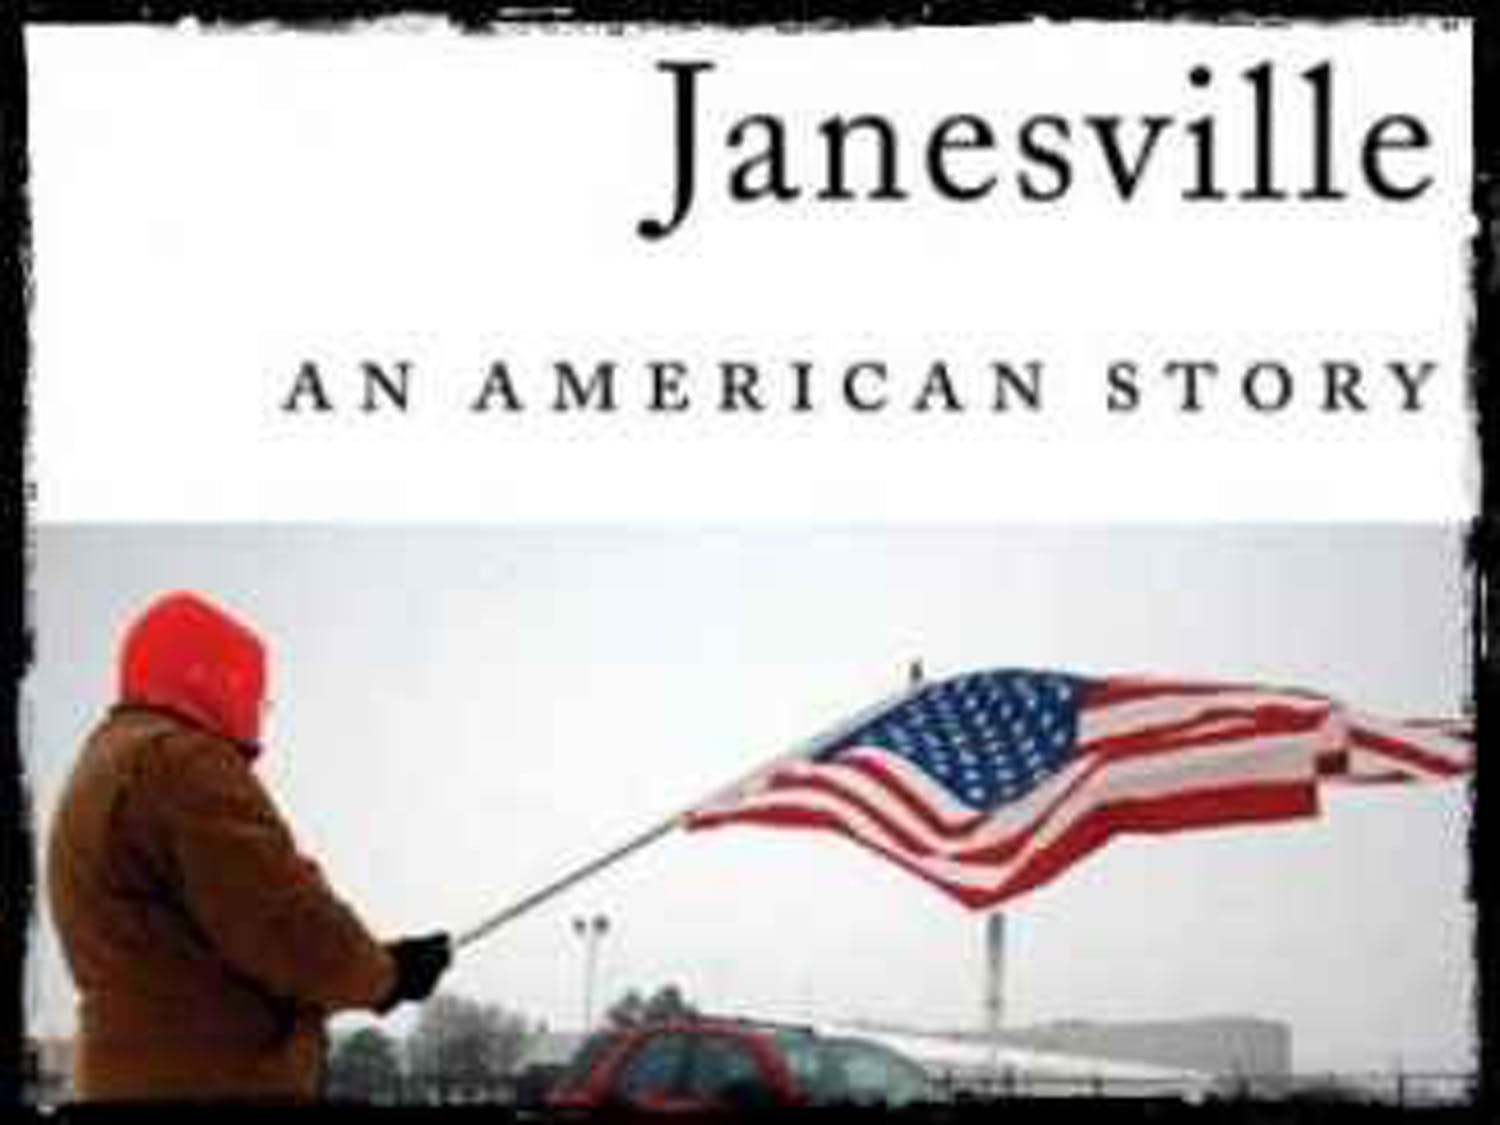 Goldstein explores changes within the Janesville community.